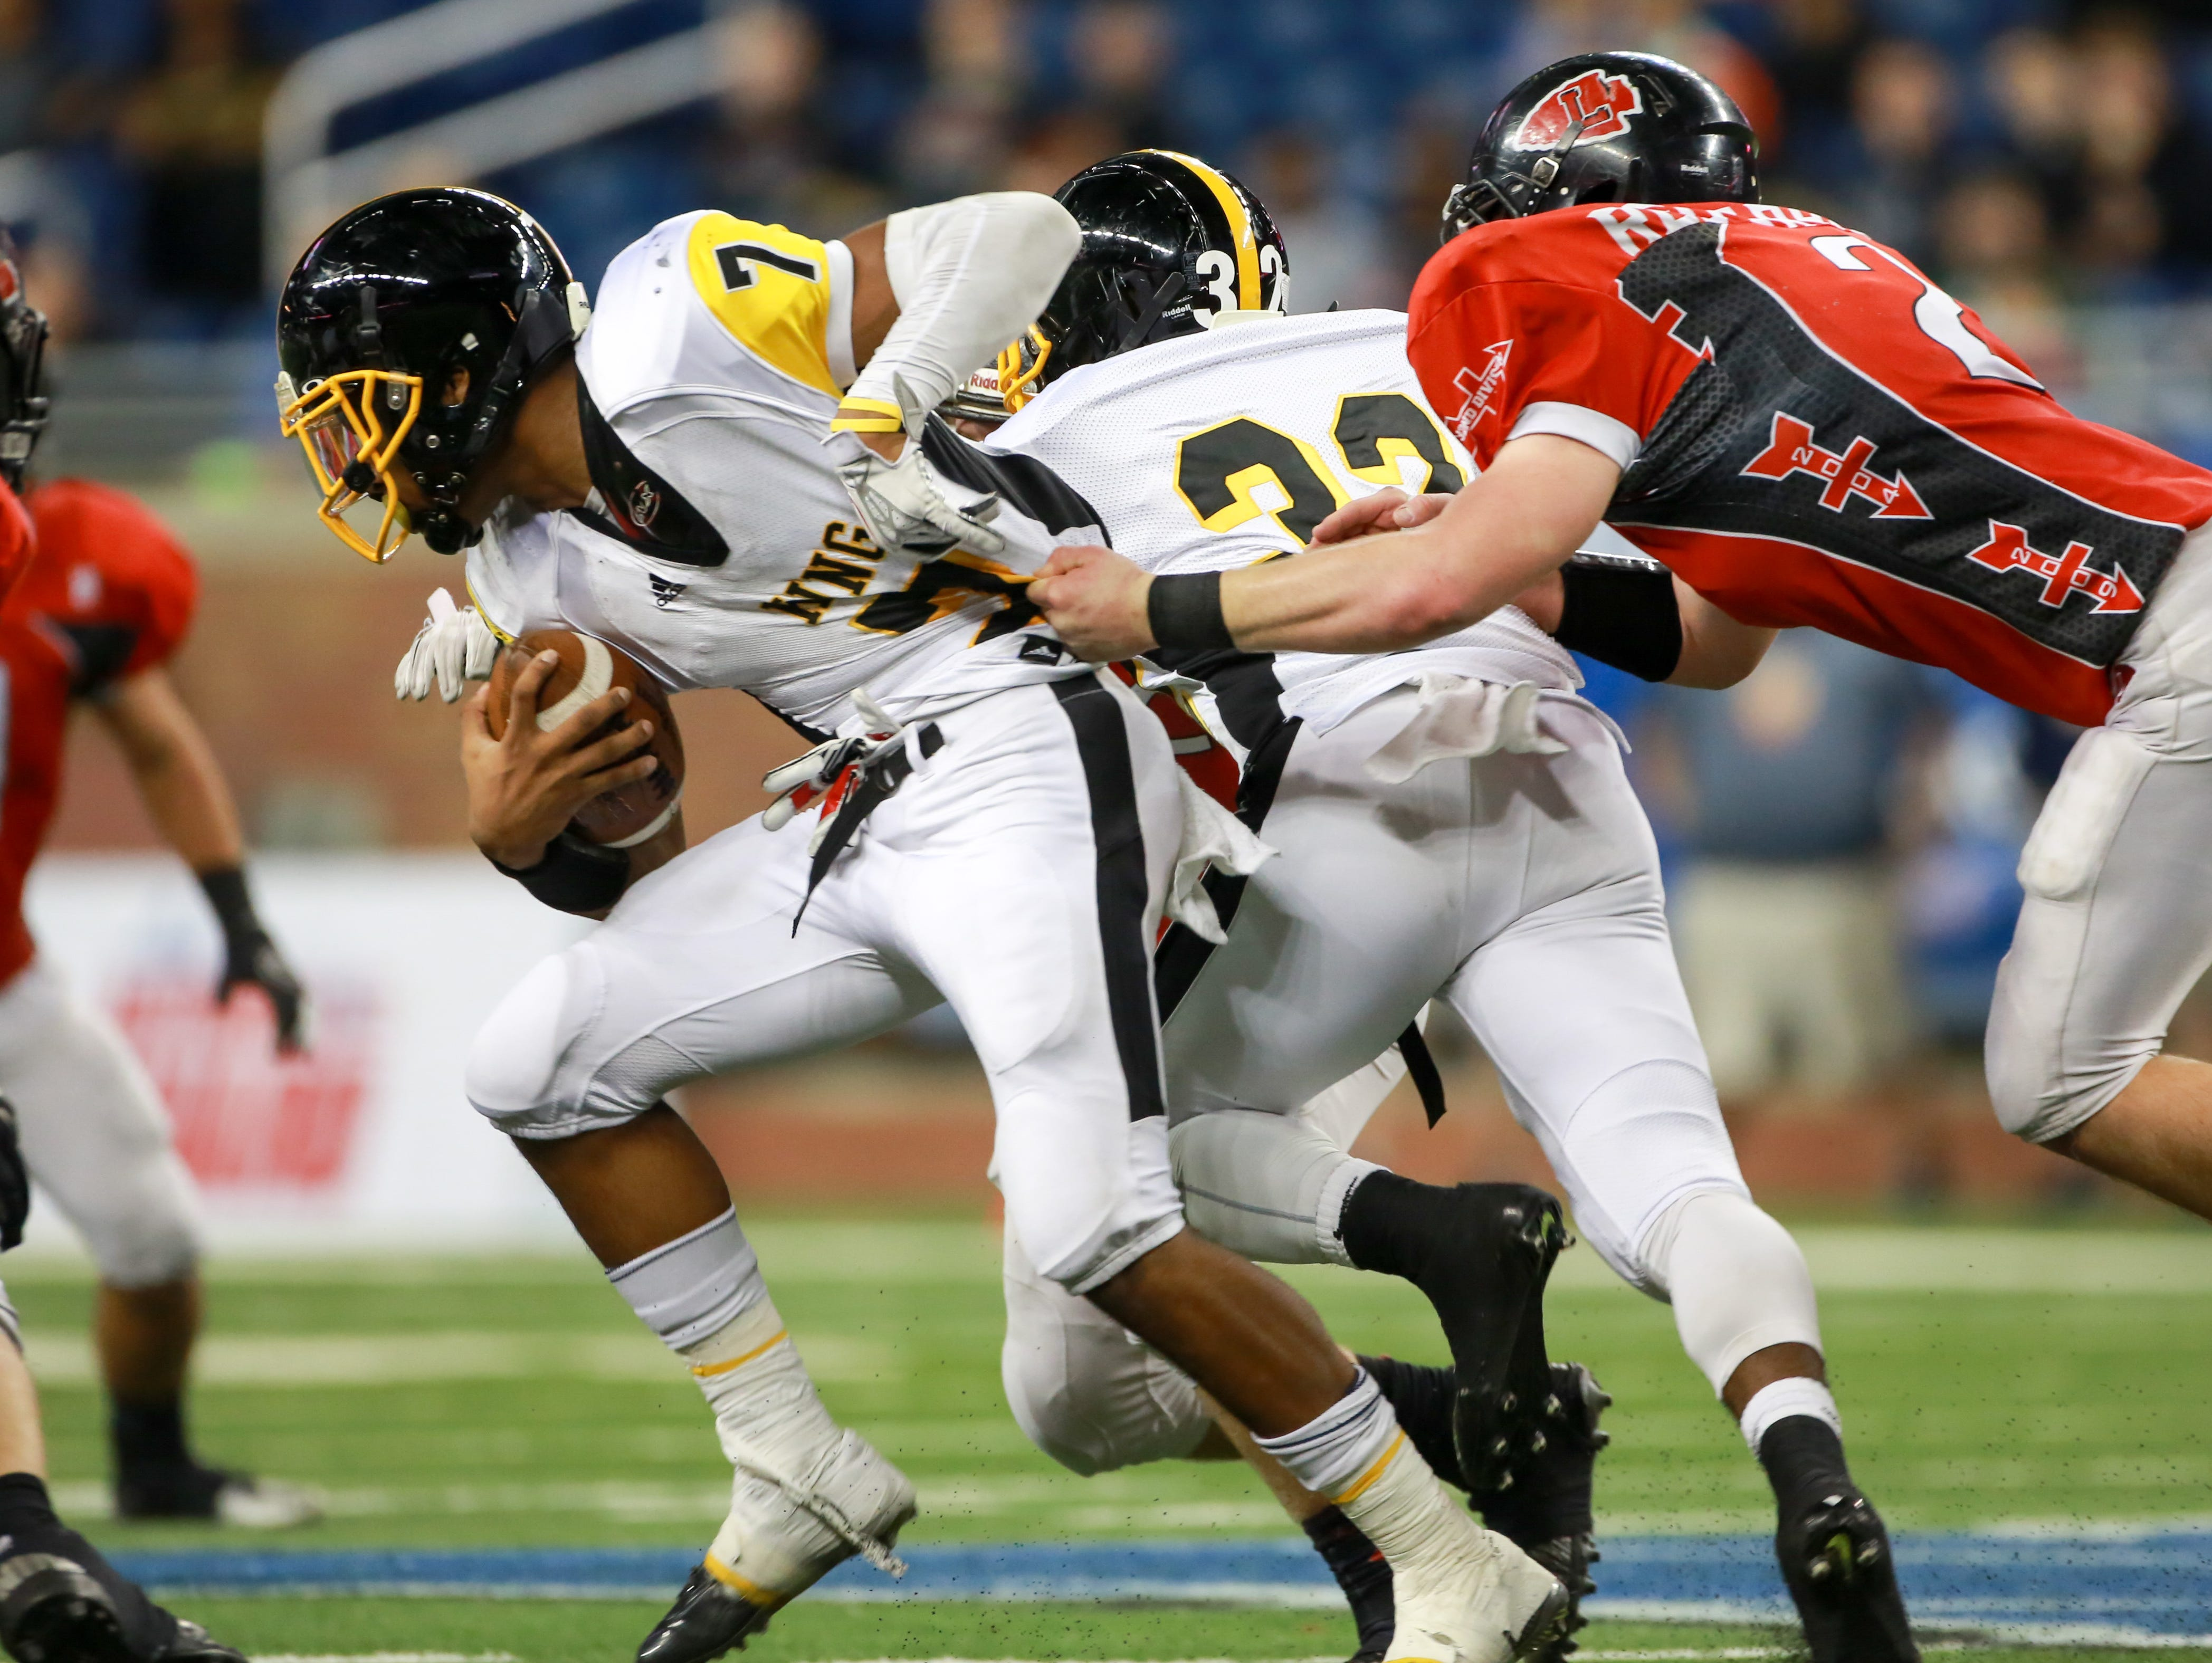 Detroit Martin Luther King QB Armani Posey tries to avoid being tackeld by Lowell LB Max Dean, during the second quarter of the Michigan High School Athletic Association football finals at Ford Field in Detroit on Friday, Nov. 27, 2015.